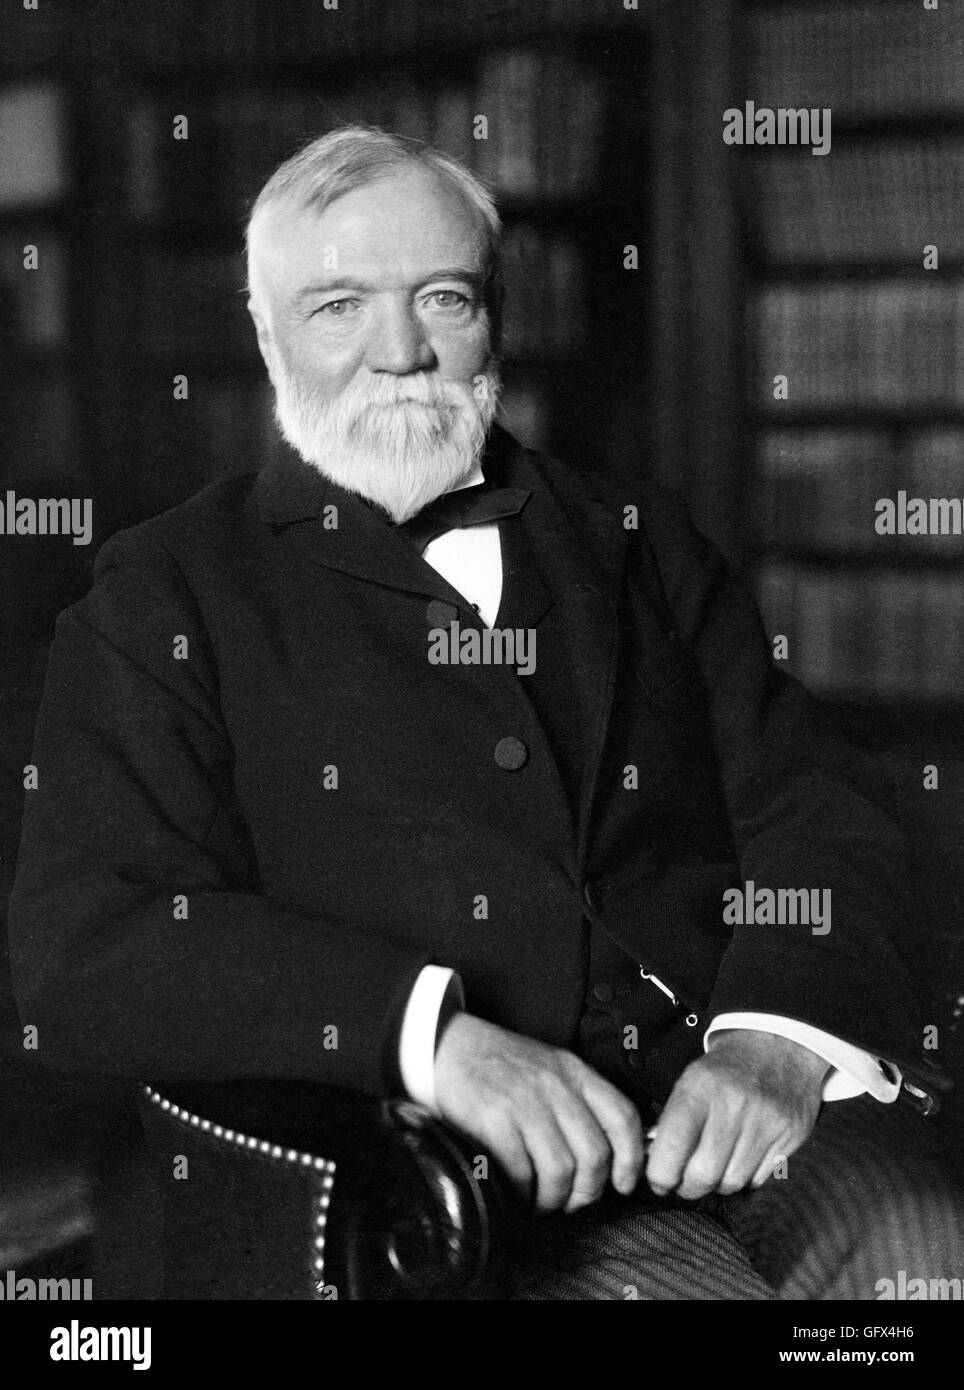 Andrew Carnegie (1835-1919), a Scottish-American industrialist, prominent in the American steel industry in the - Stock Image